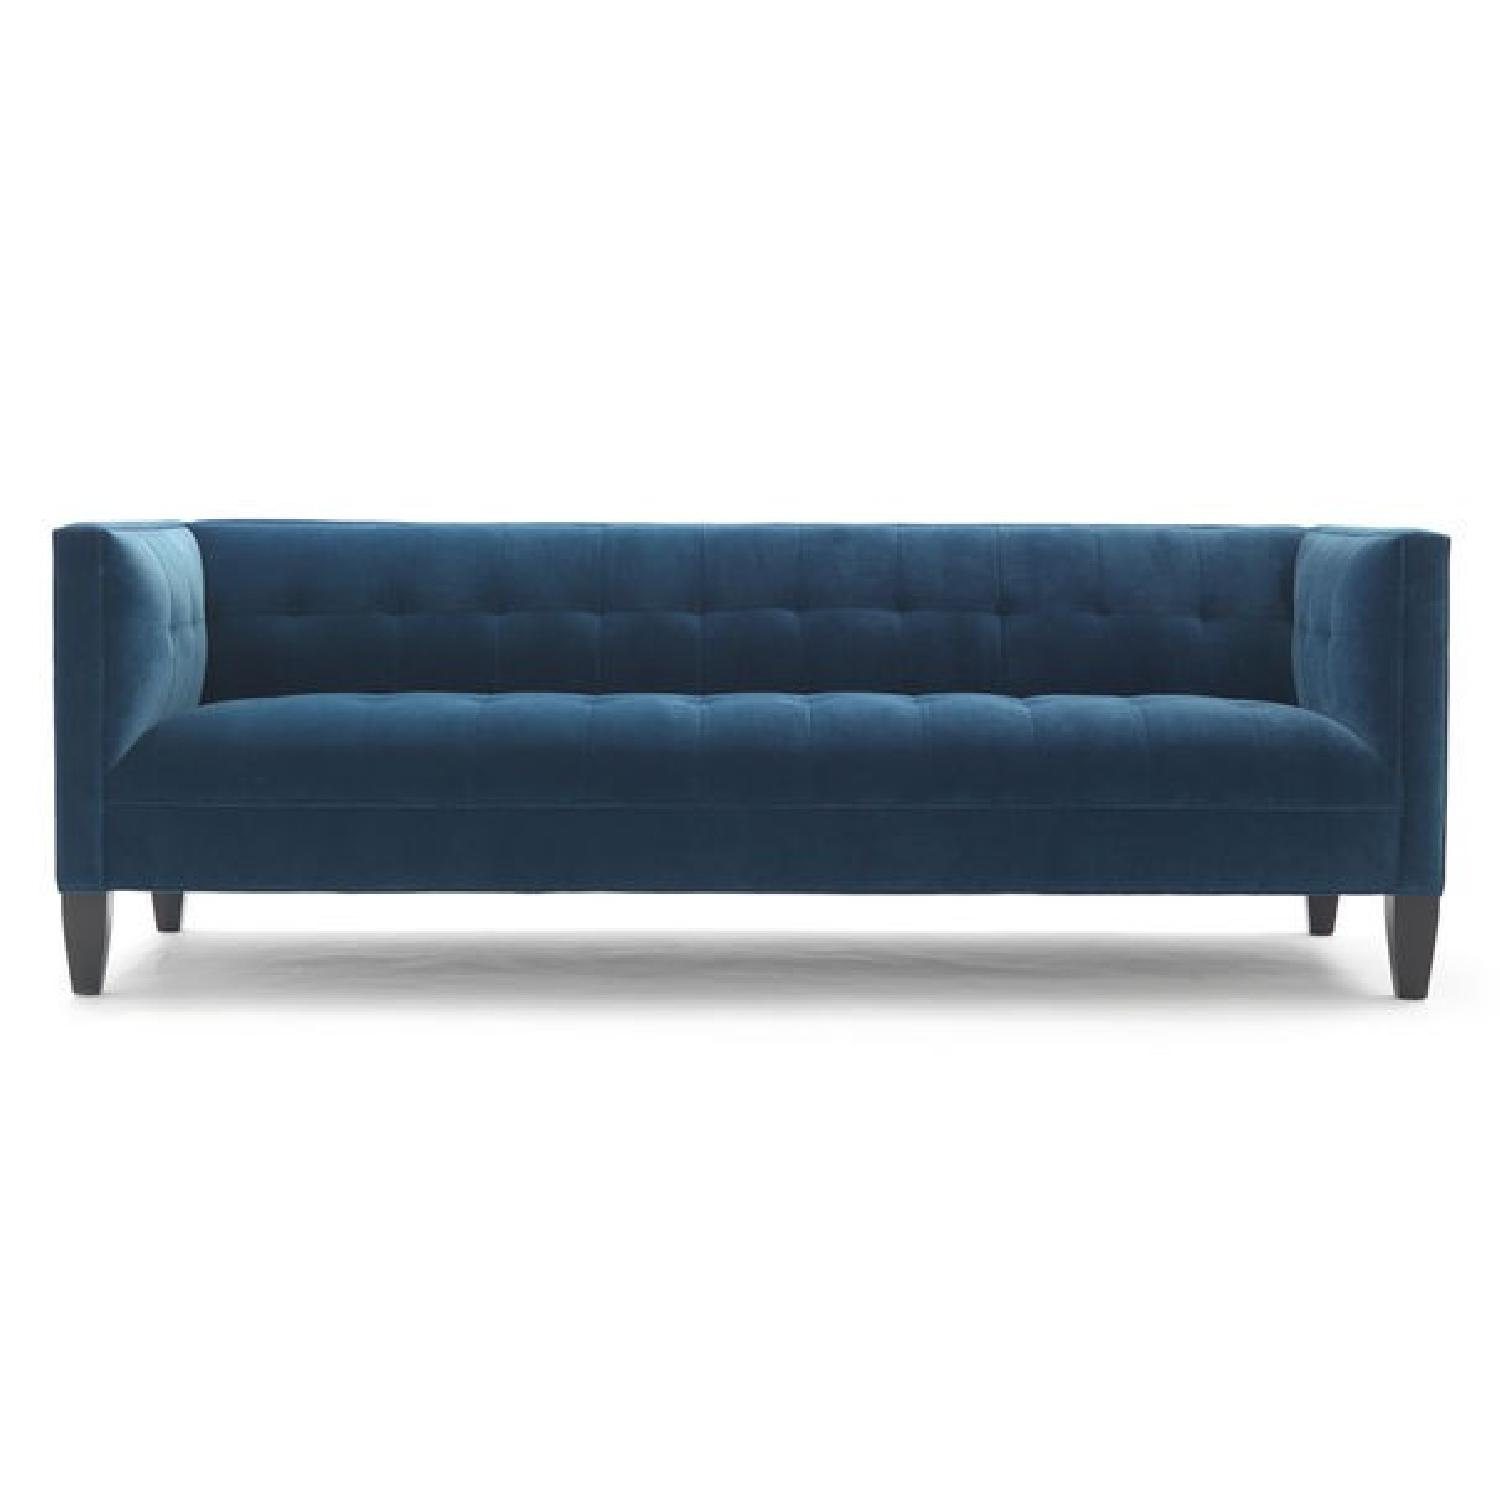 Mitchell Gold + Bob Williams Kennedy Sofa in Sky Blue